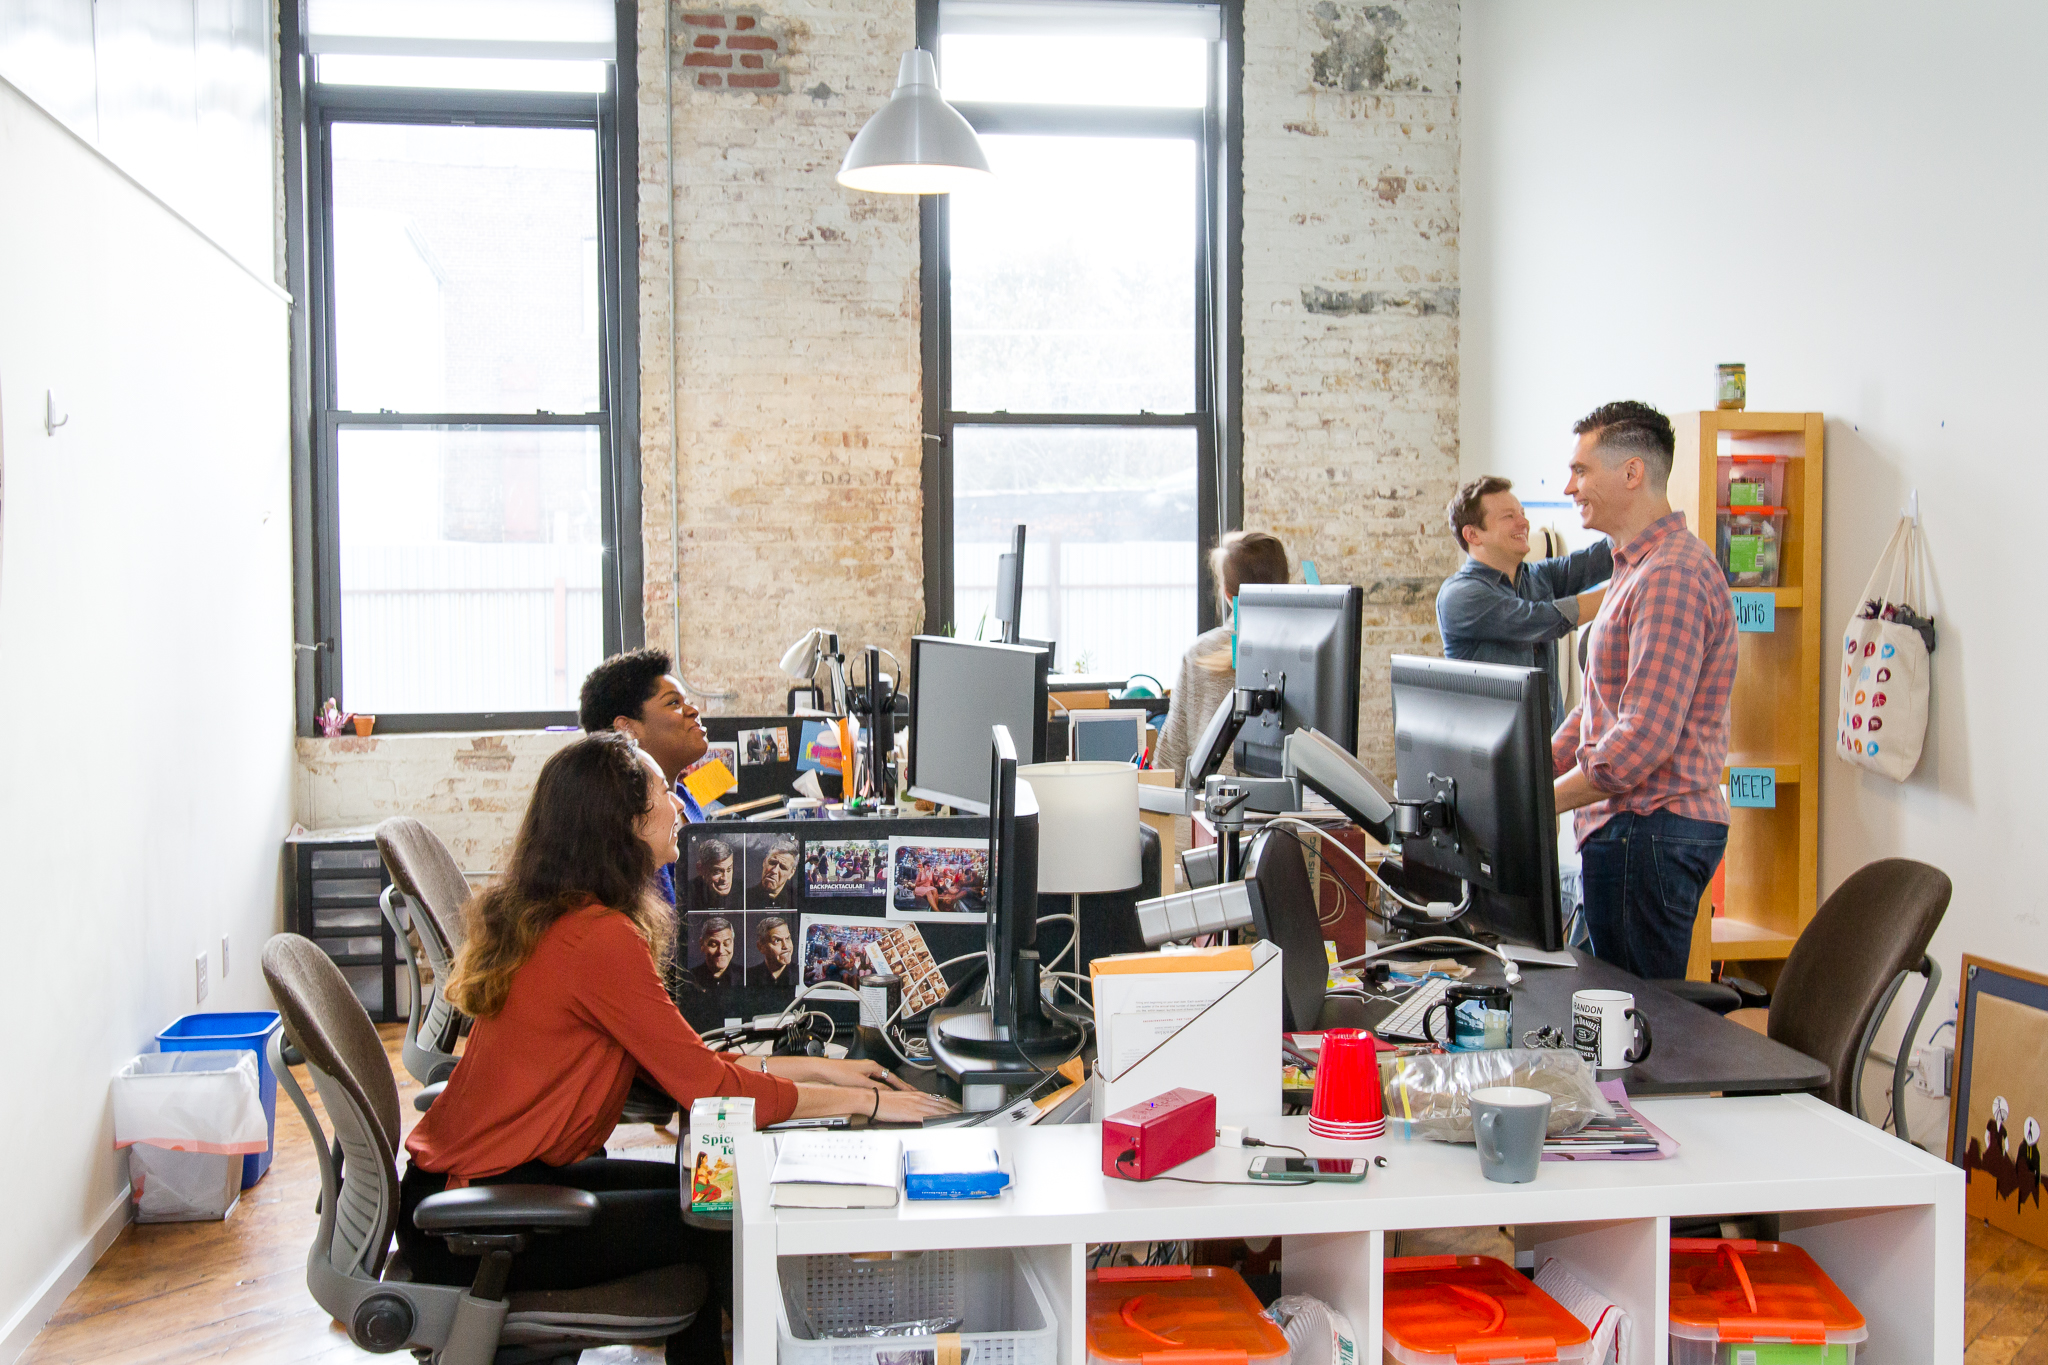 4 ways nonprofits benefit from coworking -